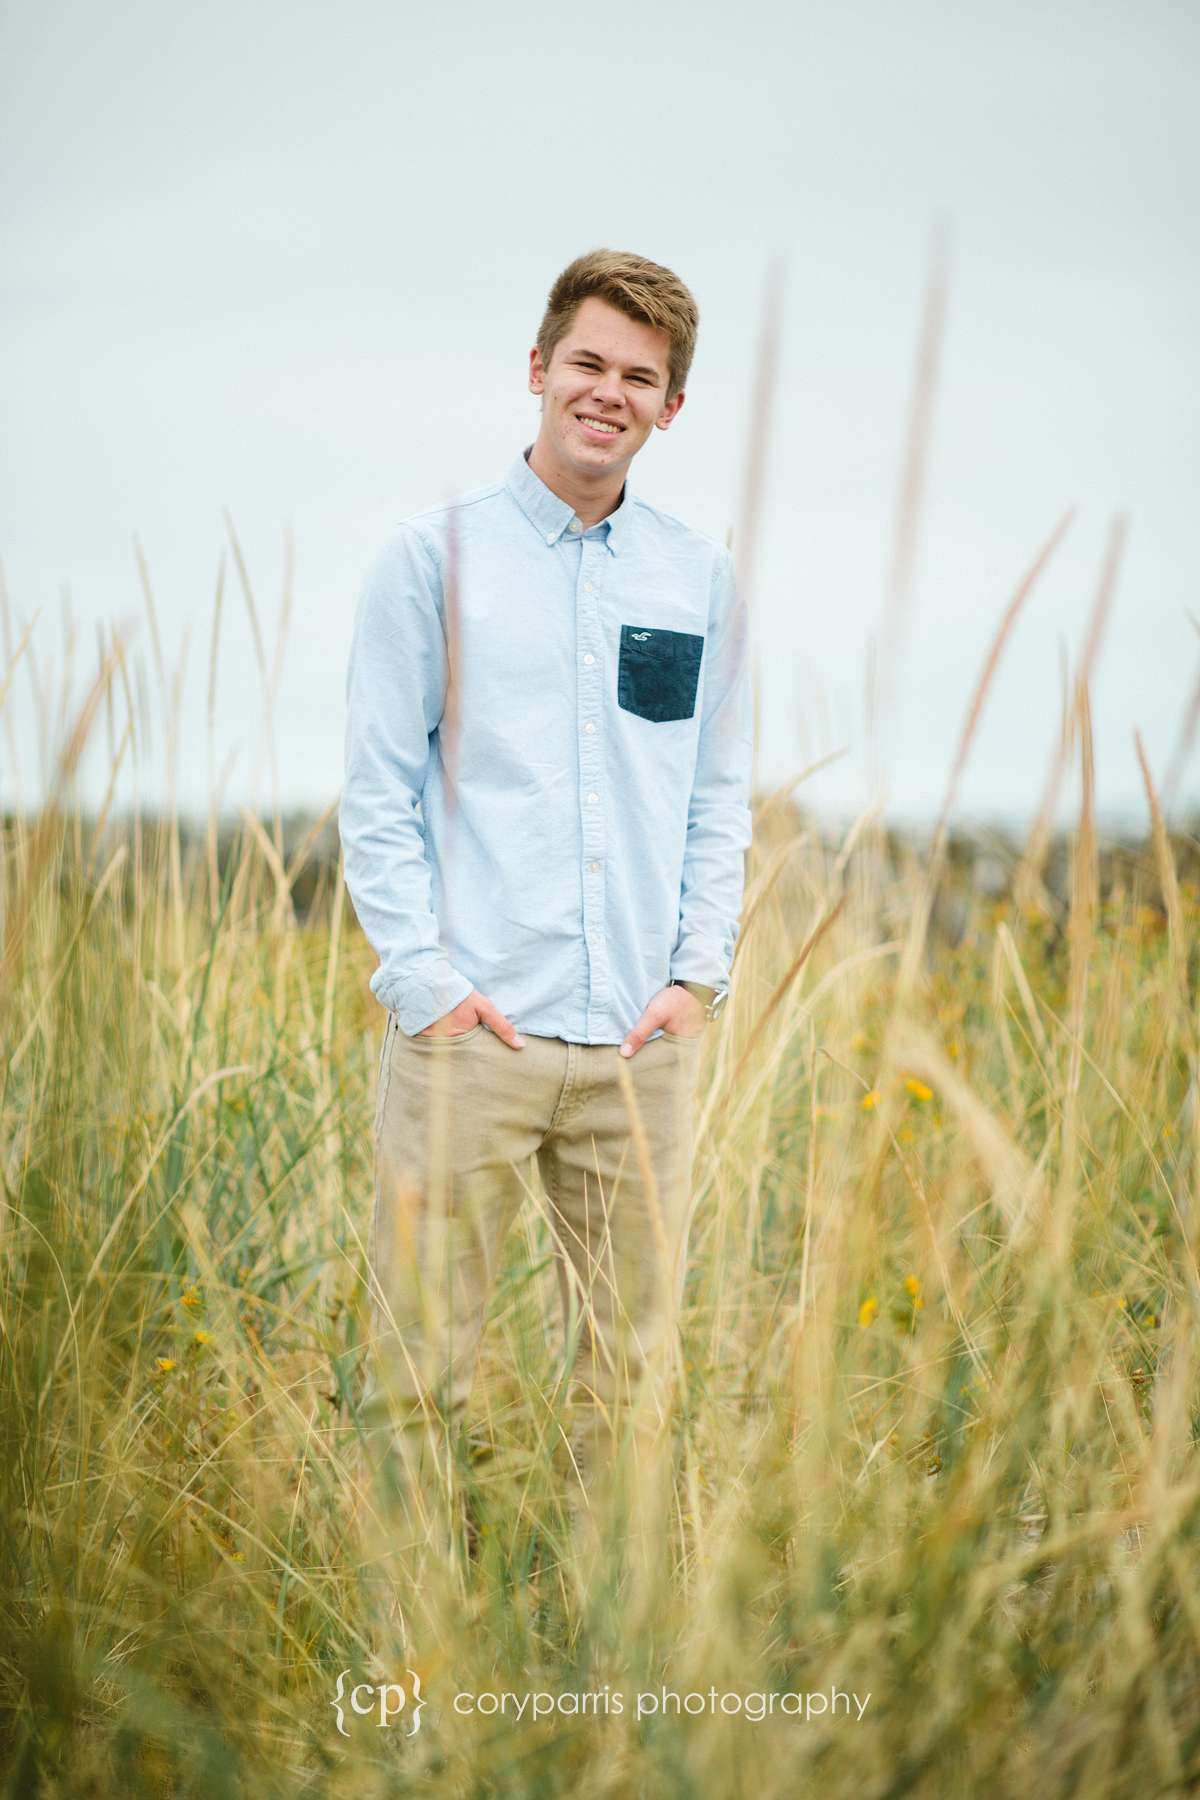 029-edmonds-beach-senior-portraits.jpg